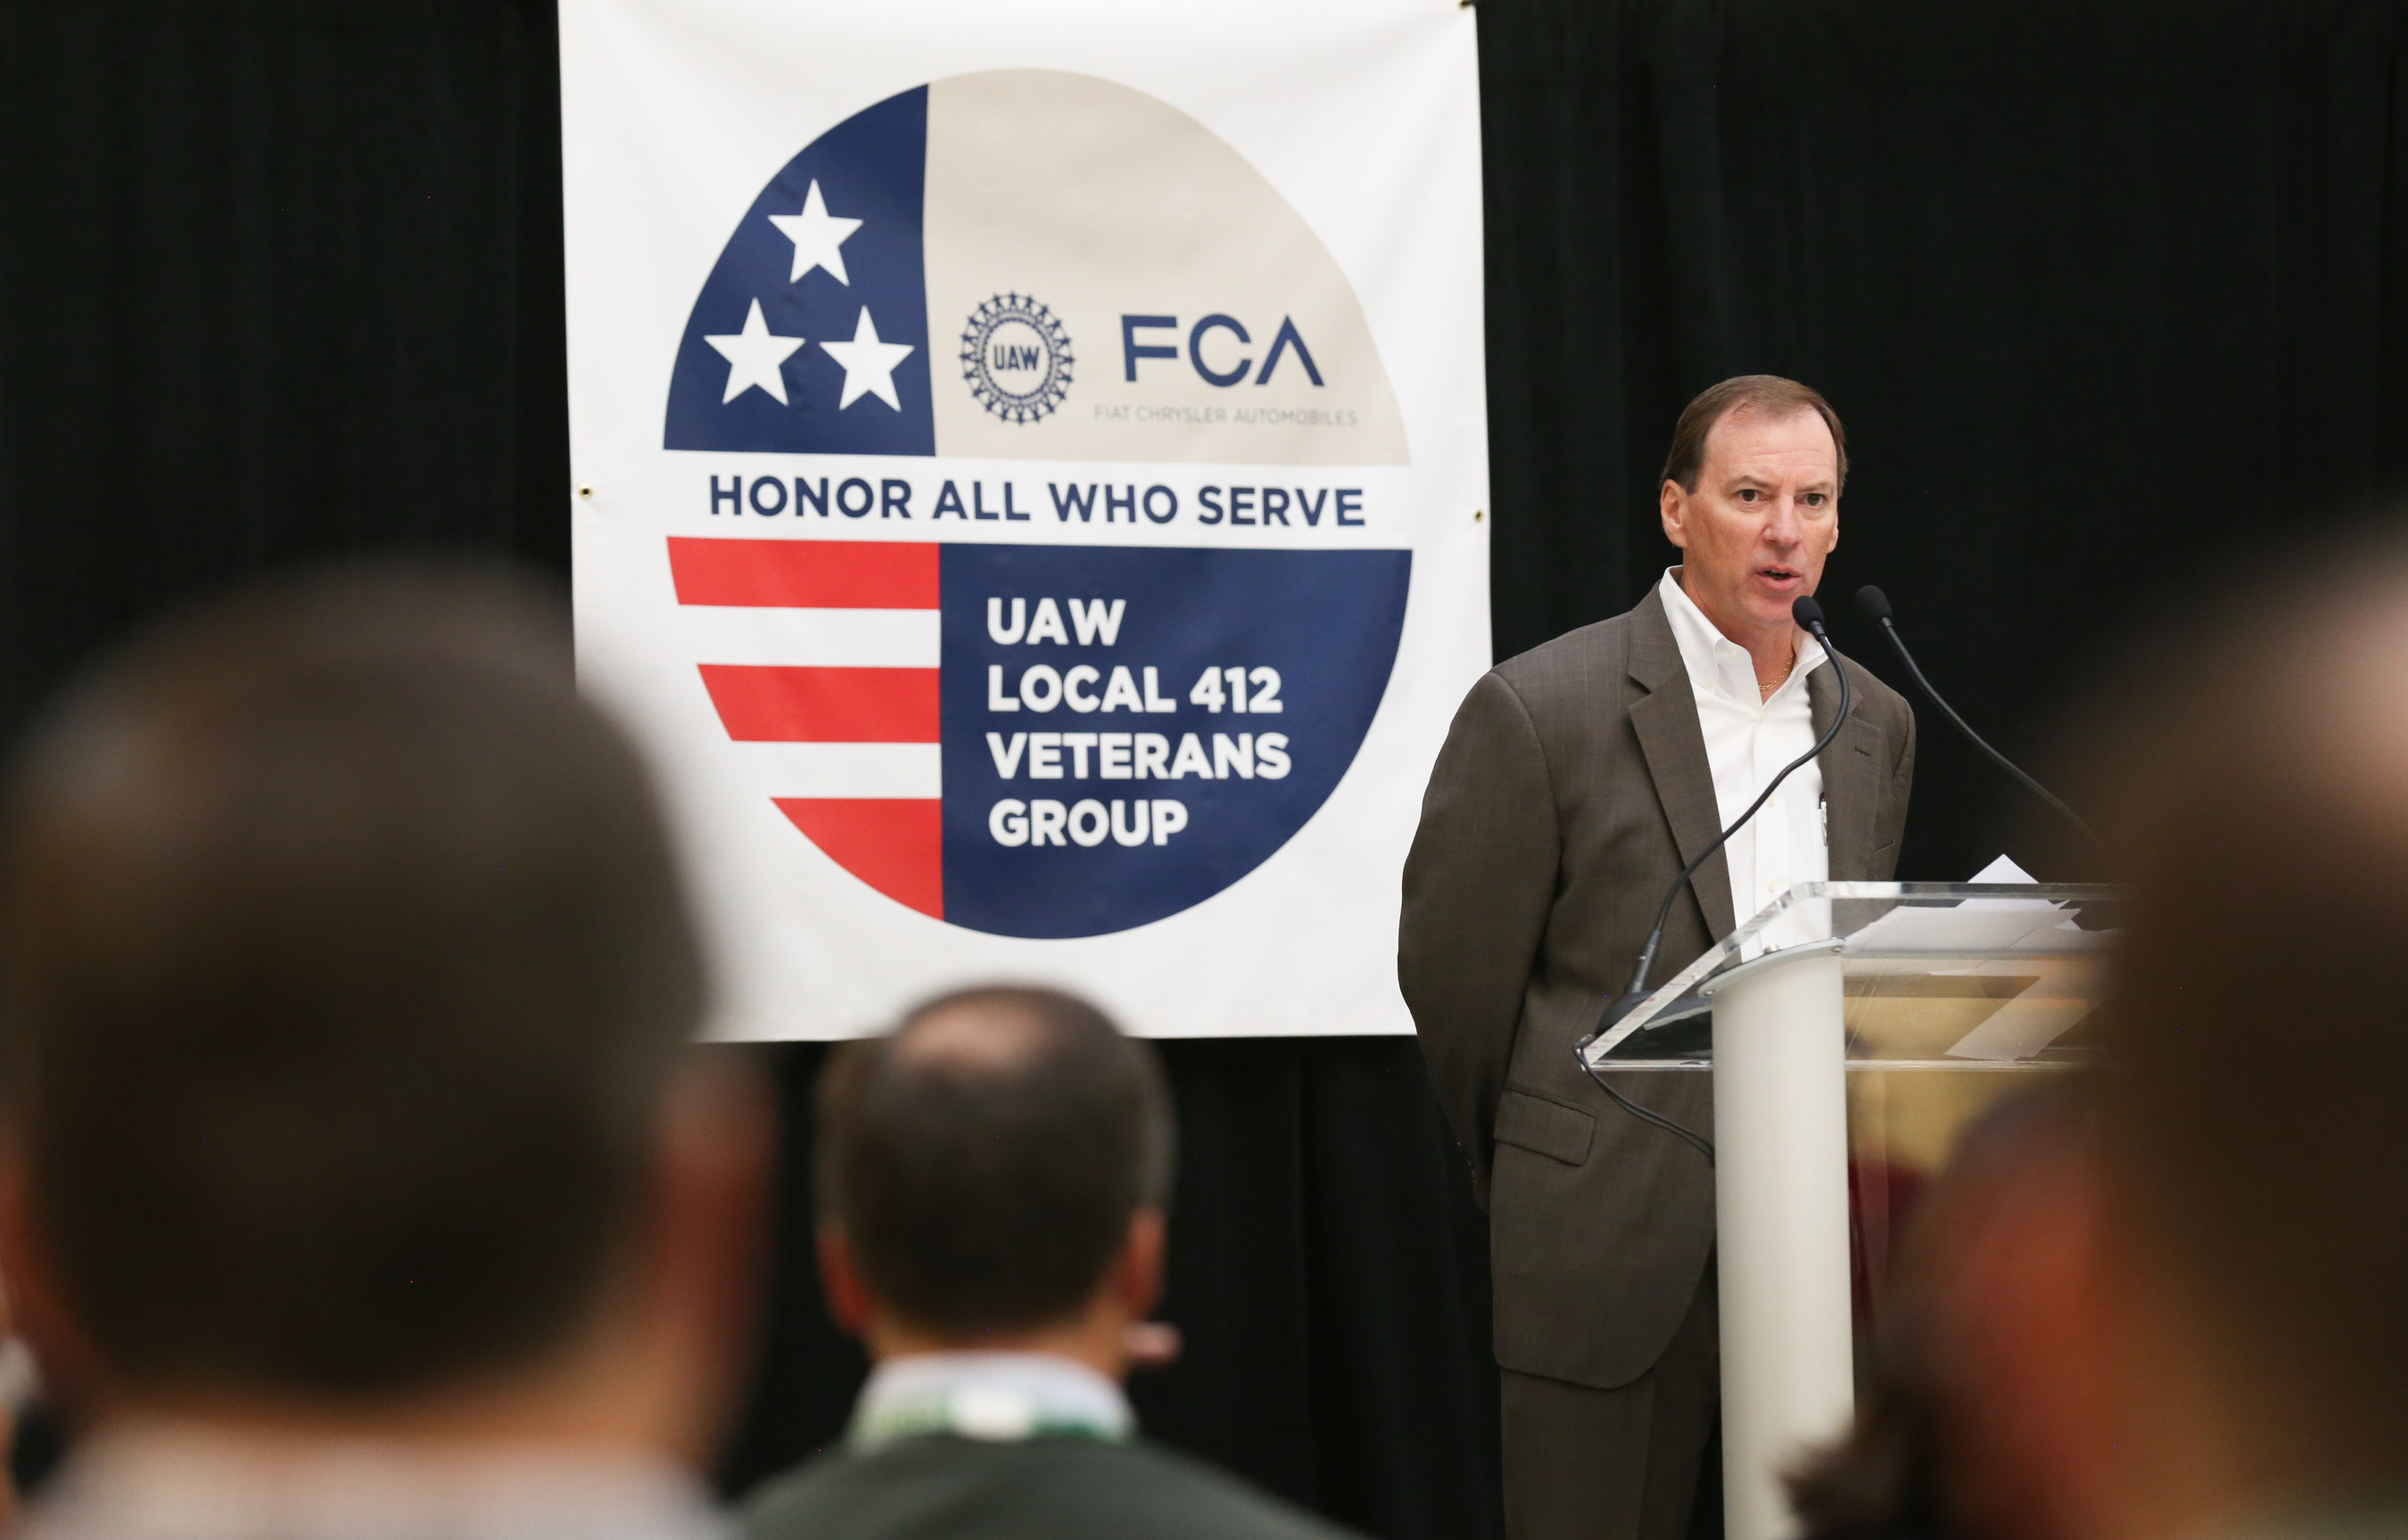 Glenn Shagena, Head of FCA US Employee Relations marked the Veteran's Day observance.